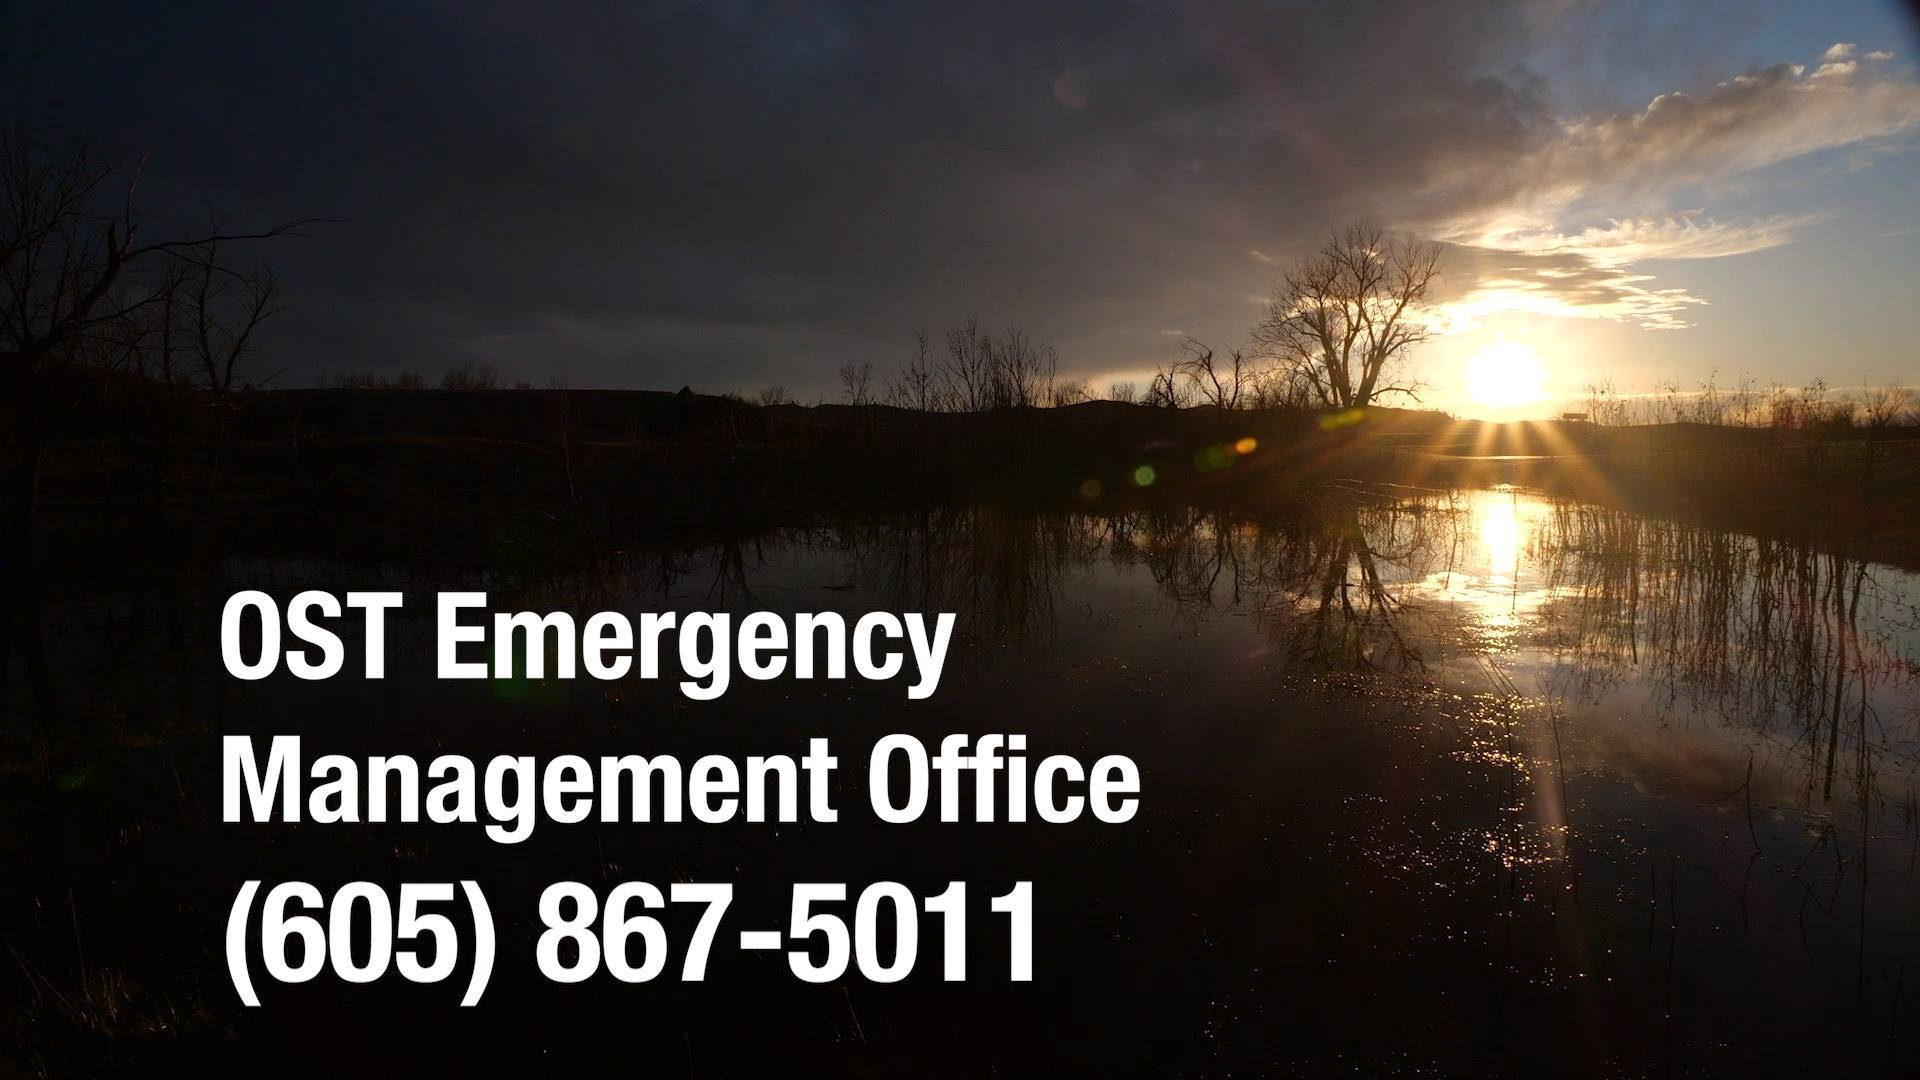 Pine Ridge Residents: Submit Your Flood Damage Info by Tuesday Midnight